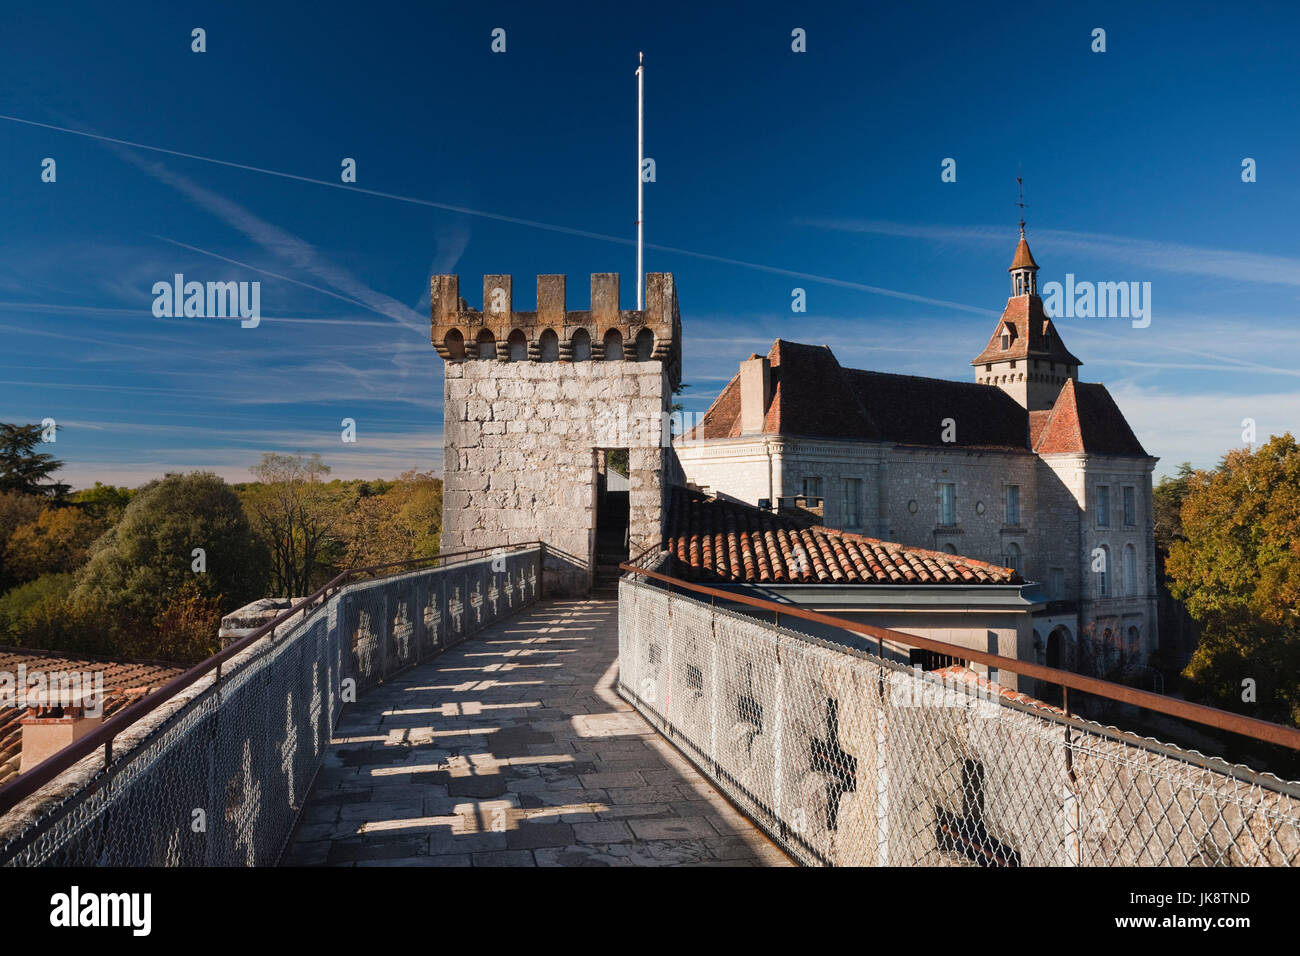 France, Midi-Pyrenees Region, Lot Department, Rocamador, chateau ramparts Stock Photo